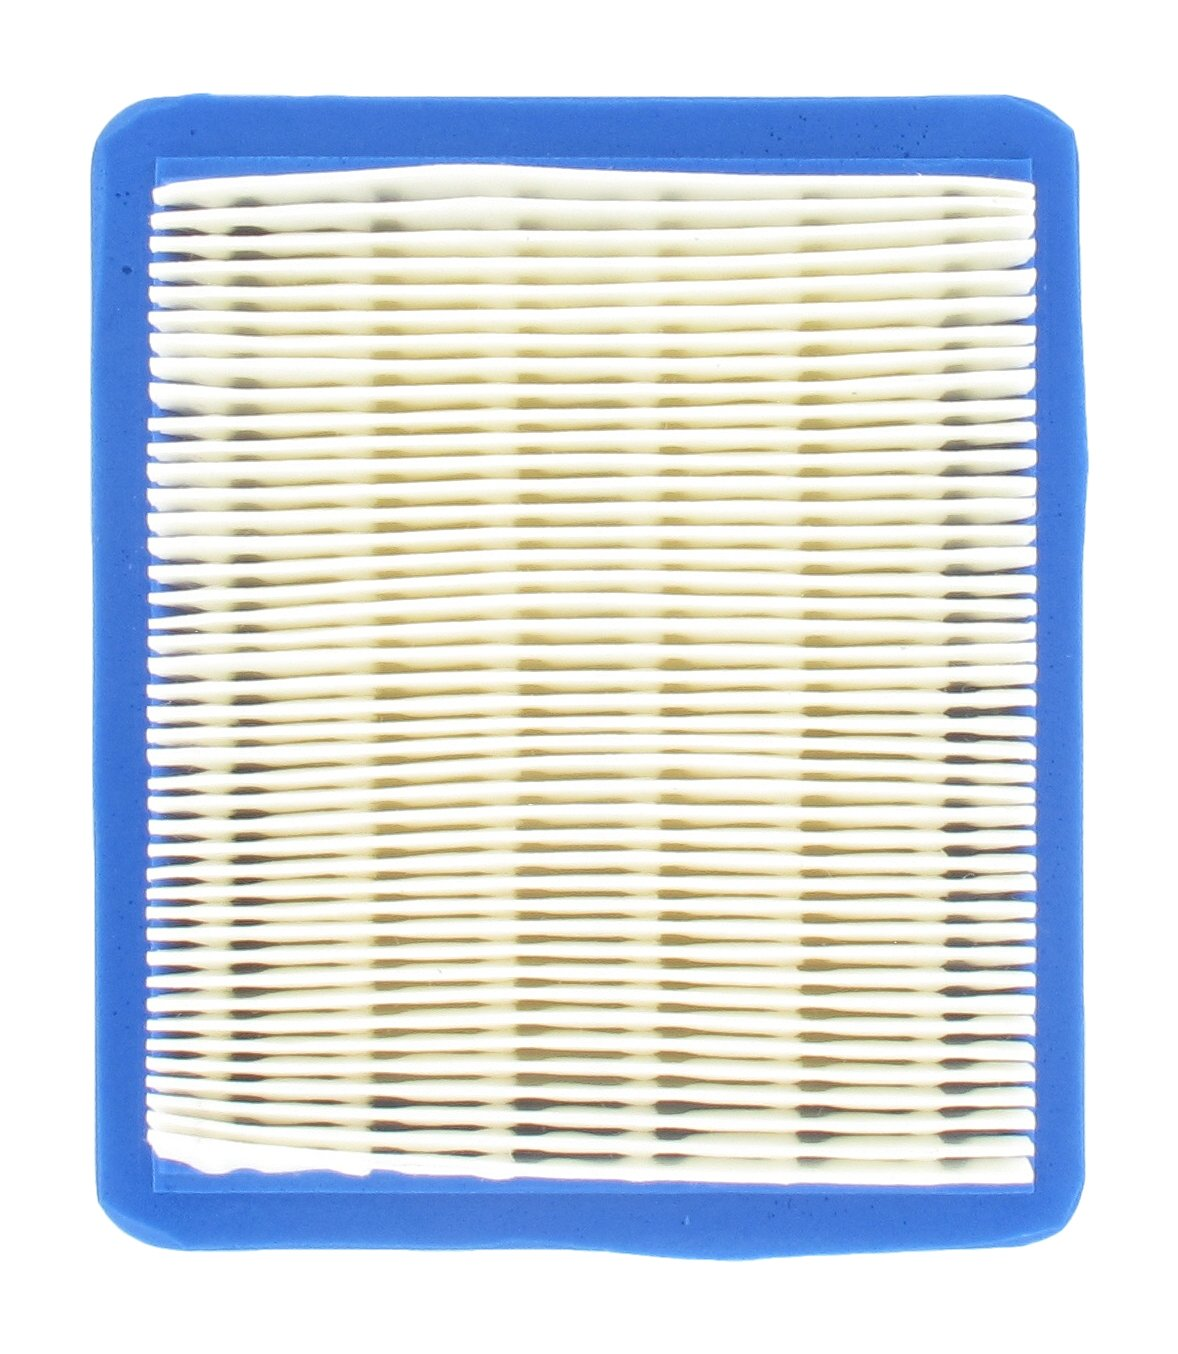 Air Filter Fits Briggs & Stratton Quantum 491588 399959 27698